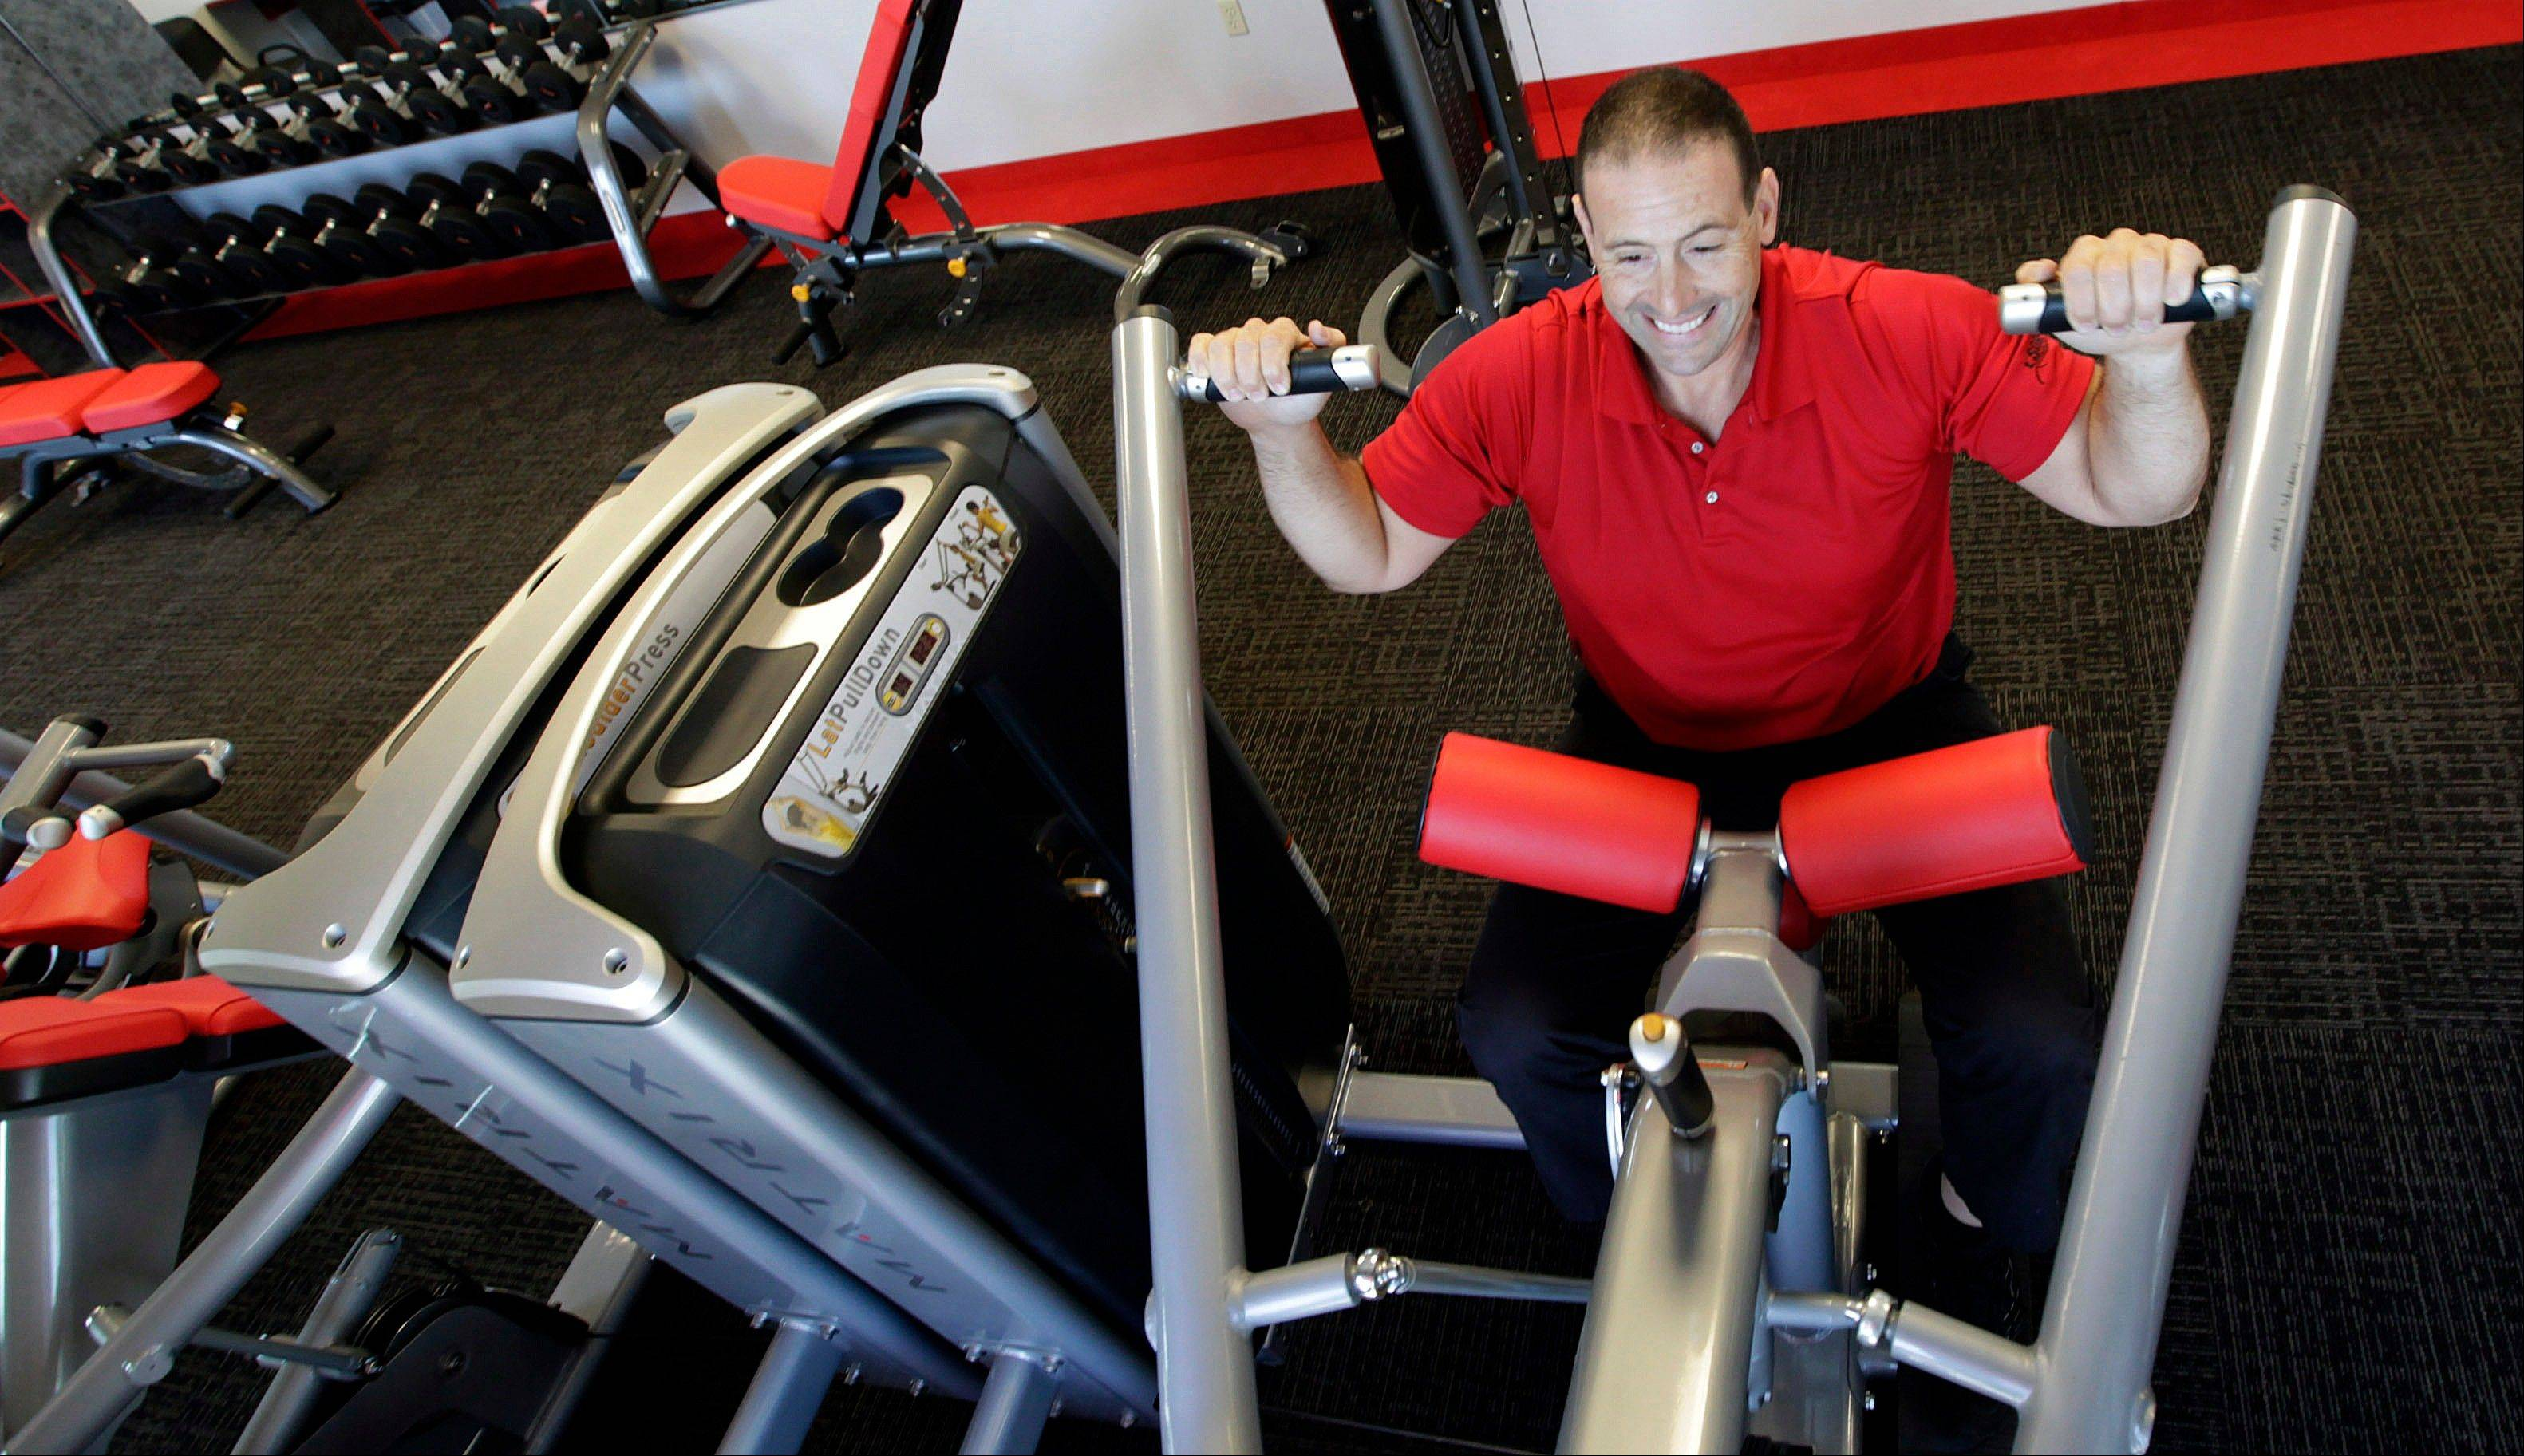 Gym manager Rick Limitone demonstrates a workout machine at Snap Fitness Rolling Strong Gym. a truck stop gym in Dallas. From trucking companies embracing wellness and weight-loss programs to gyms being installed at truck stops, momentum has picked up in recent years to help those who make their living driving big rigs get into shape.